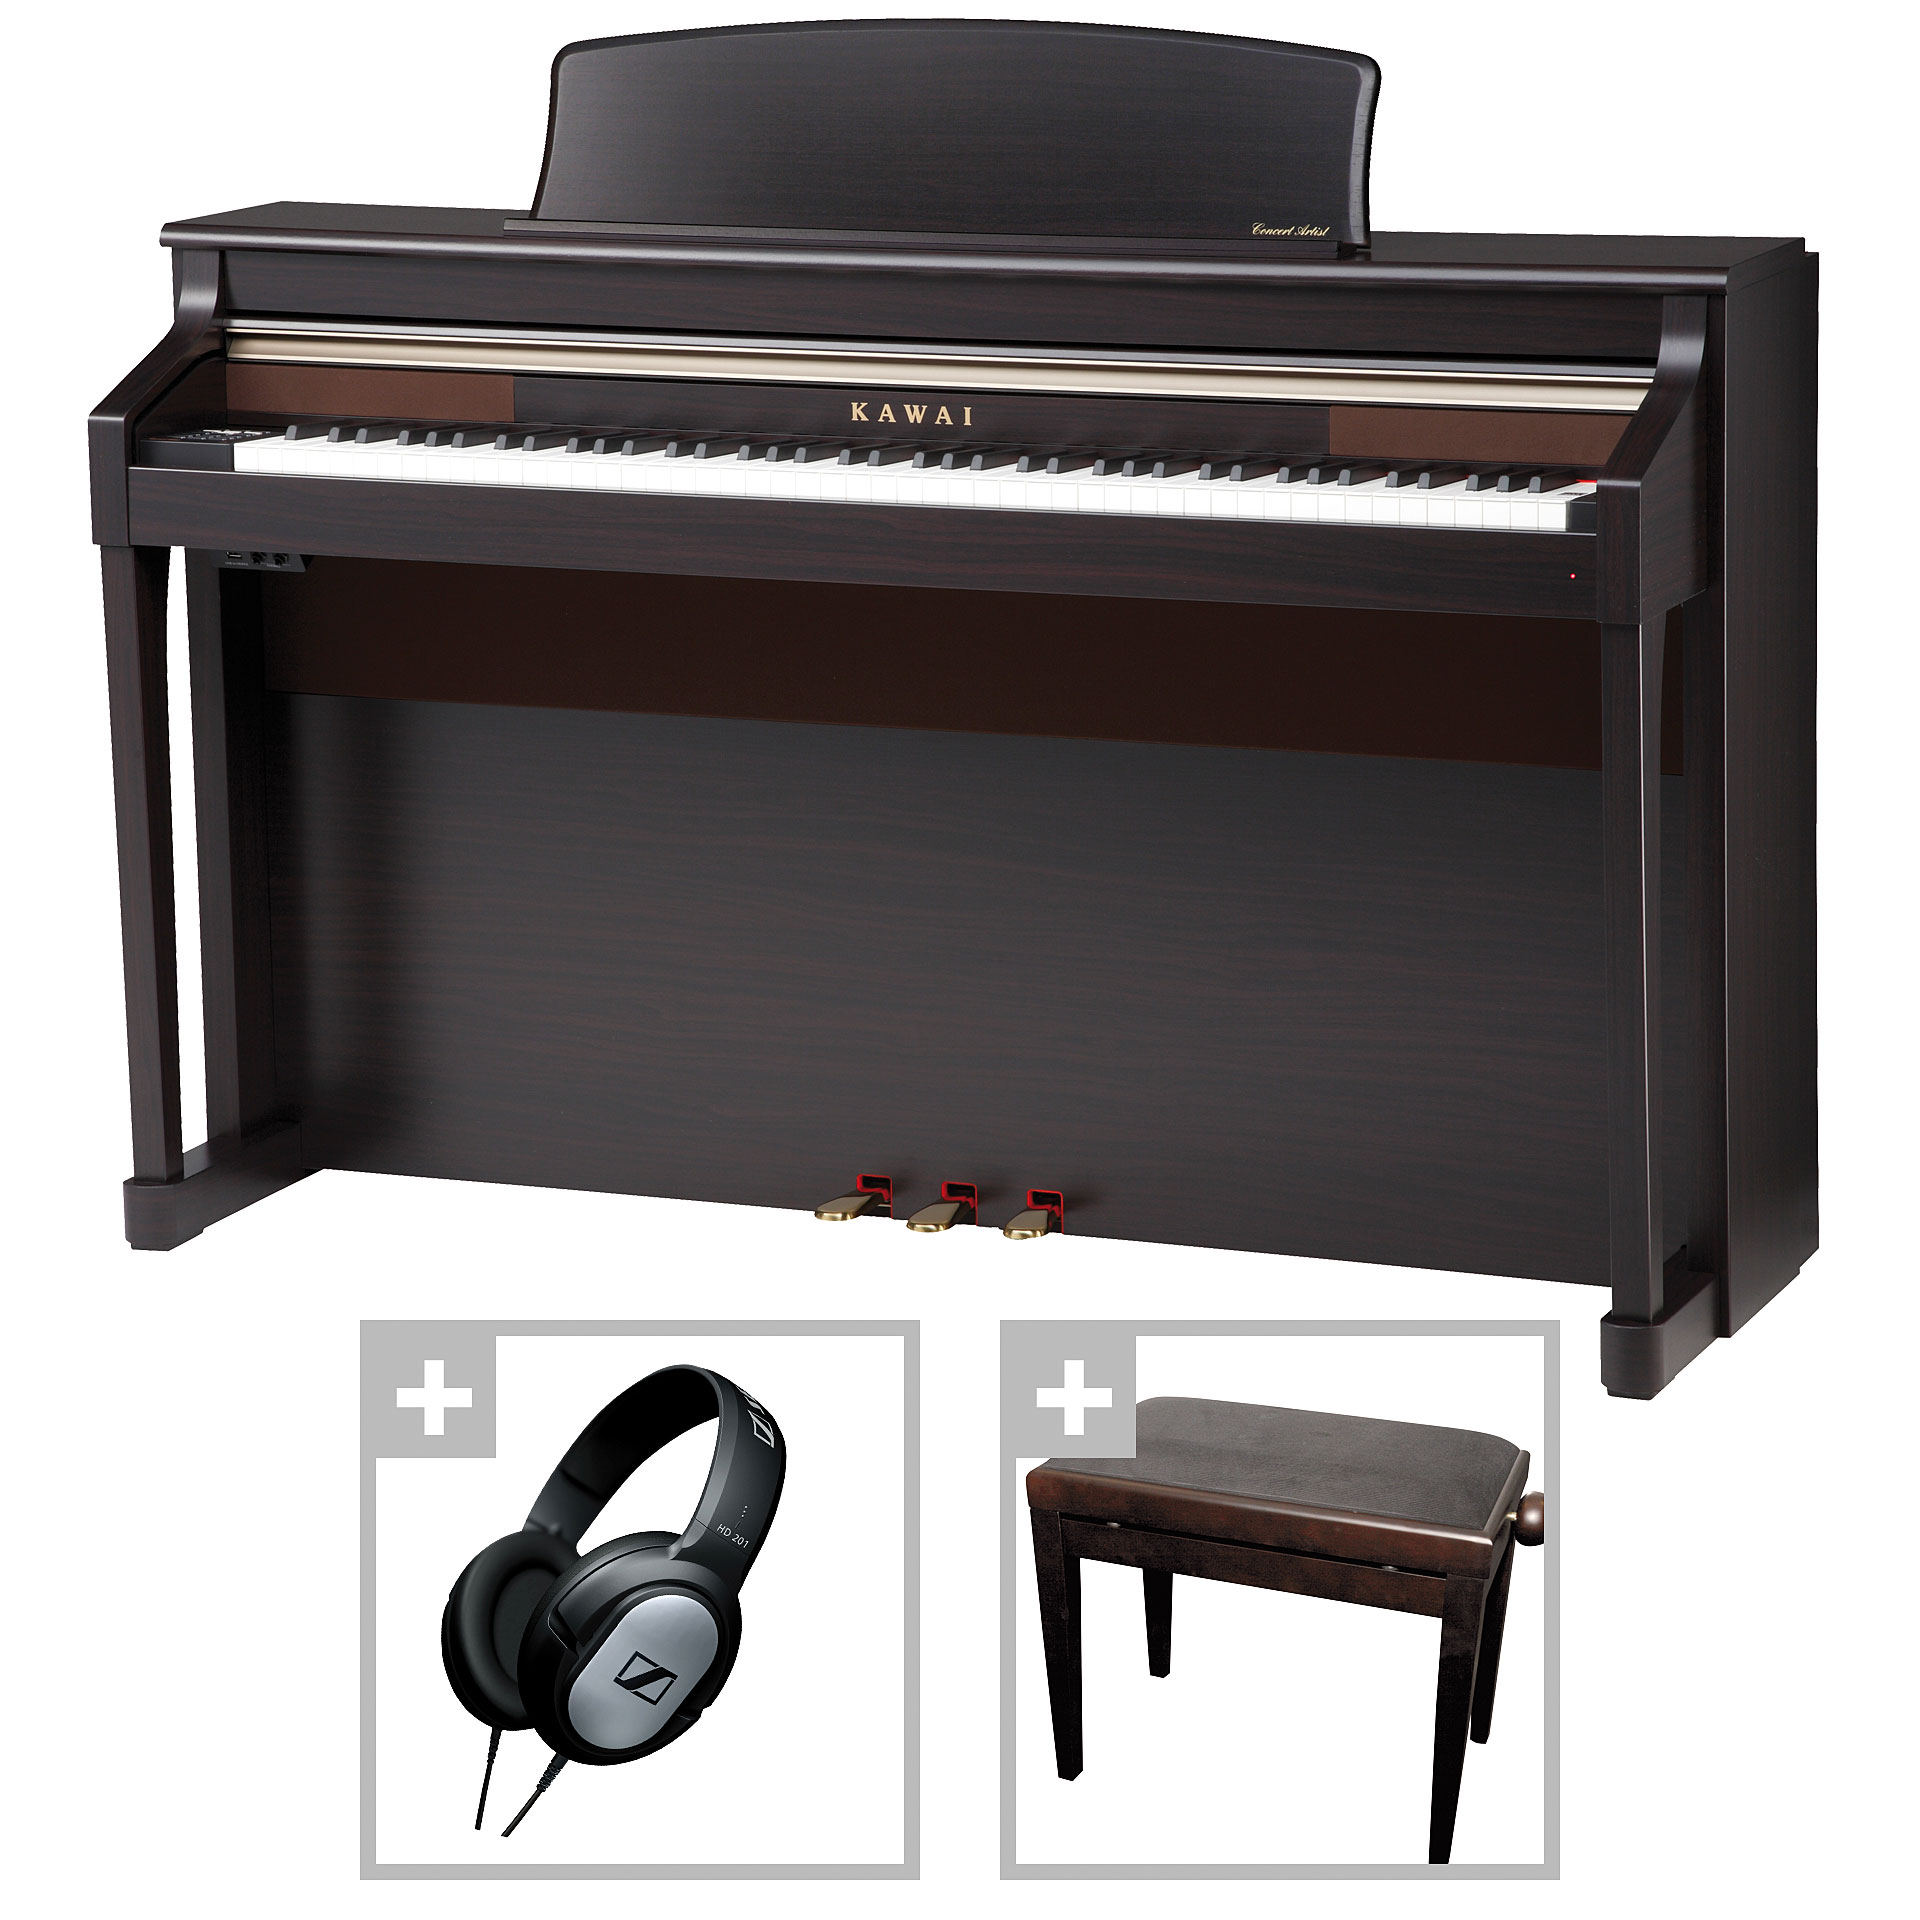 Kawai ca 95 rw bundle piano num rique for 2 box auto separati piani gratuiti